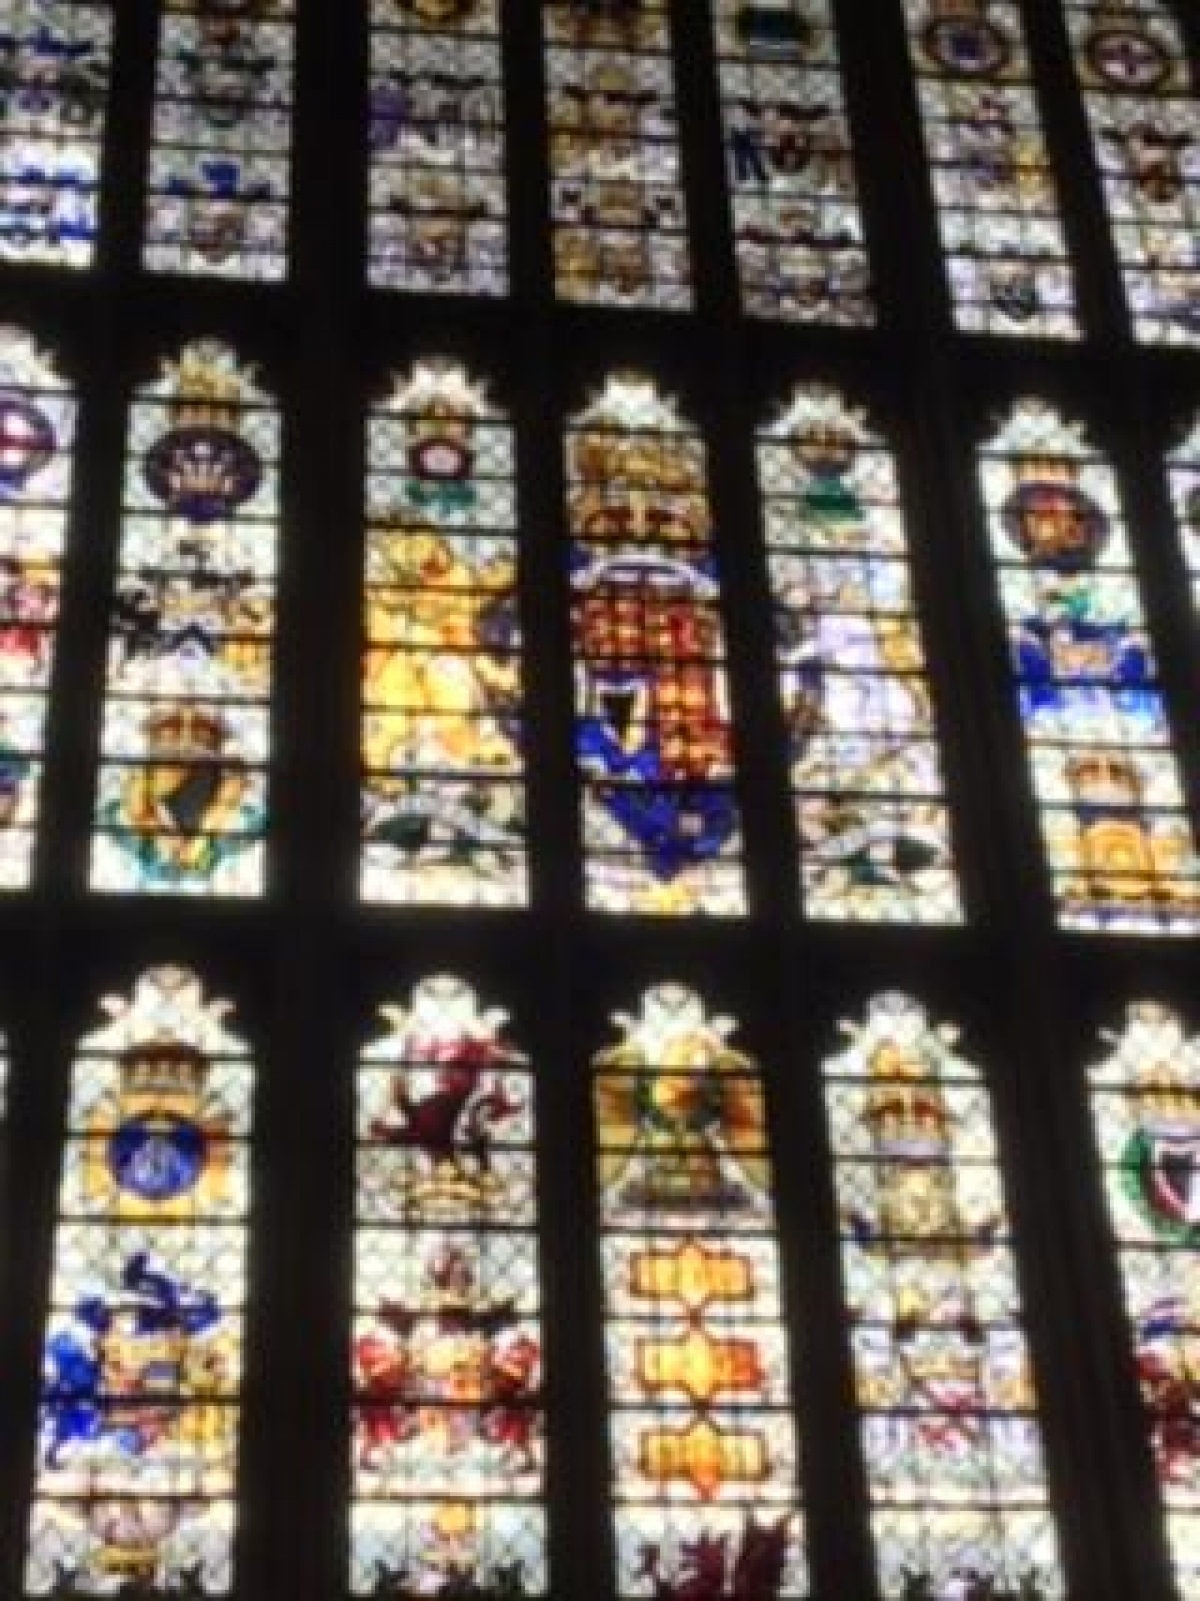 Houses of Parliament and the Royal Courts of Justice